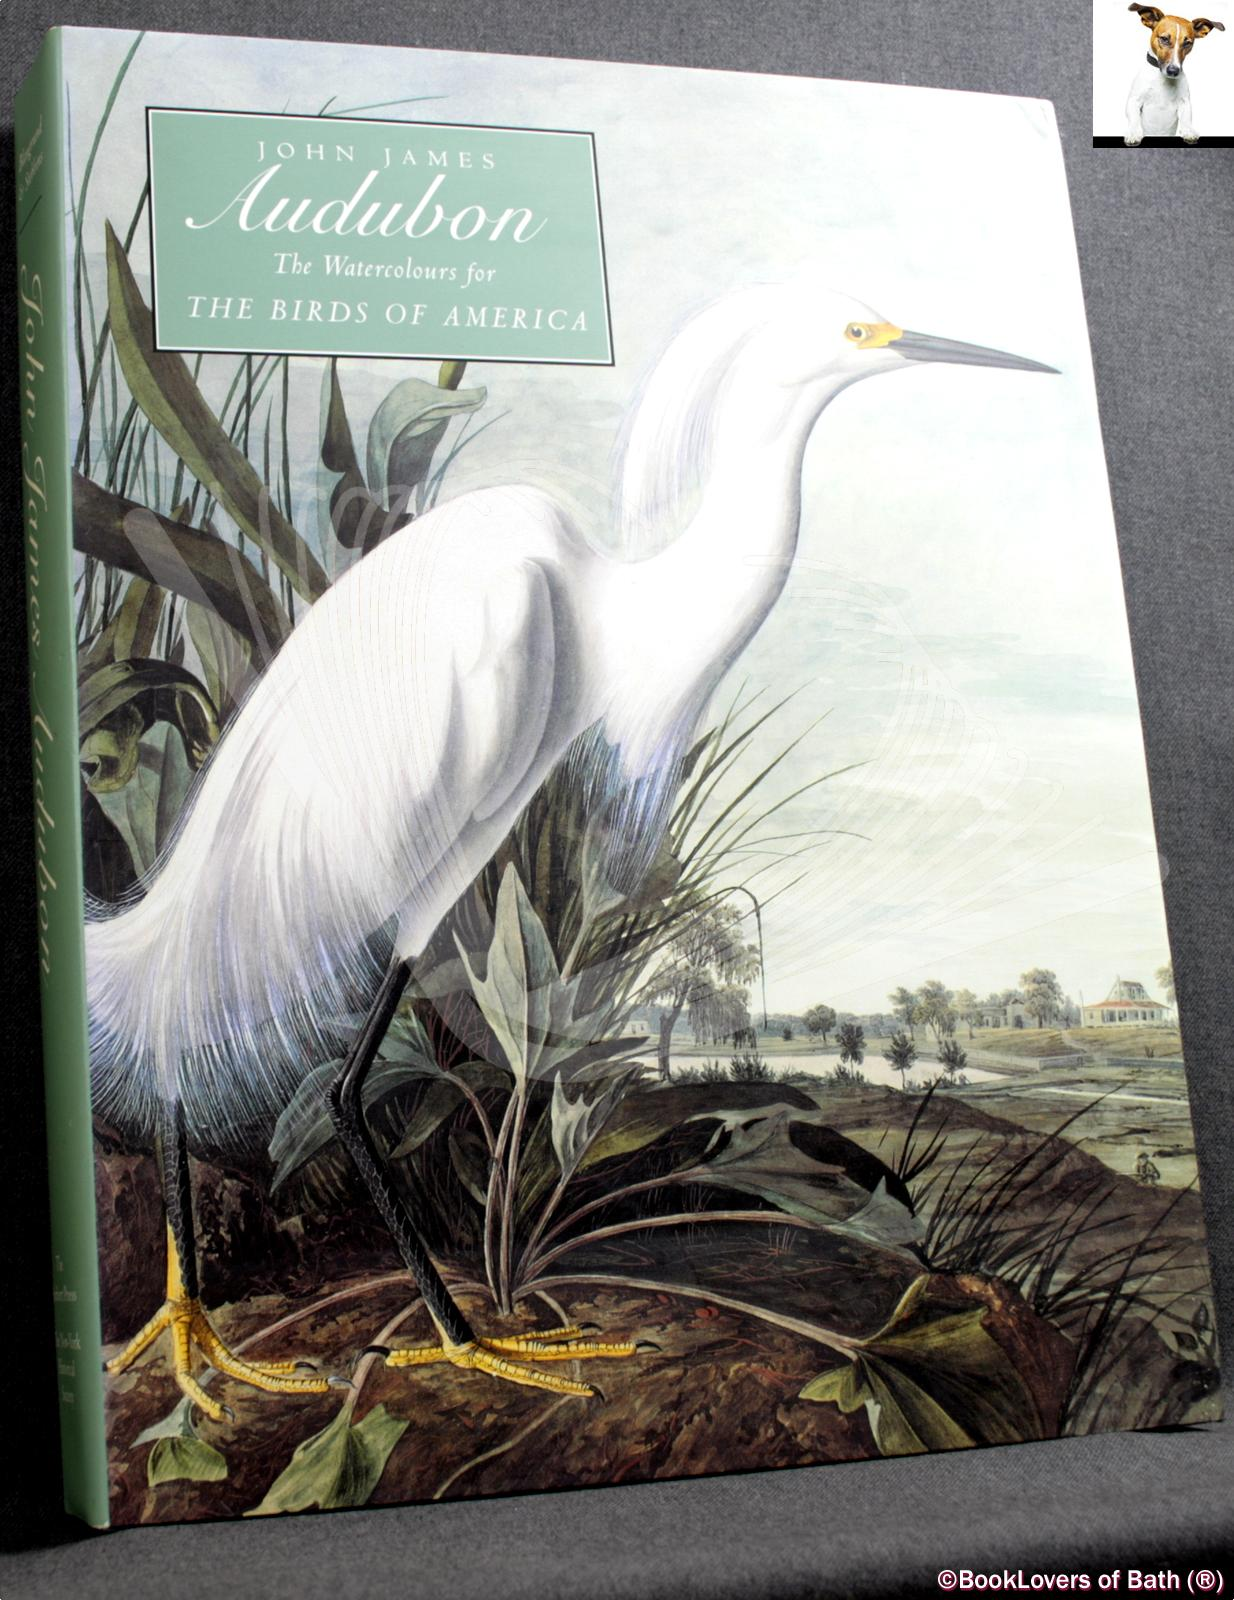 John James Audubon: Watercolours for the Birds of America - Edited by Annette Blaugrund & Theodore E. Stebbins